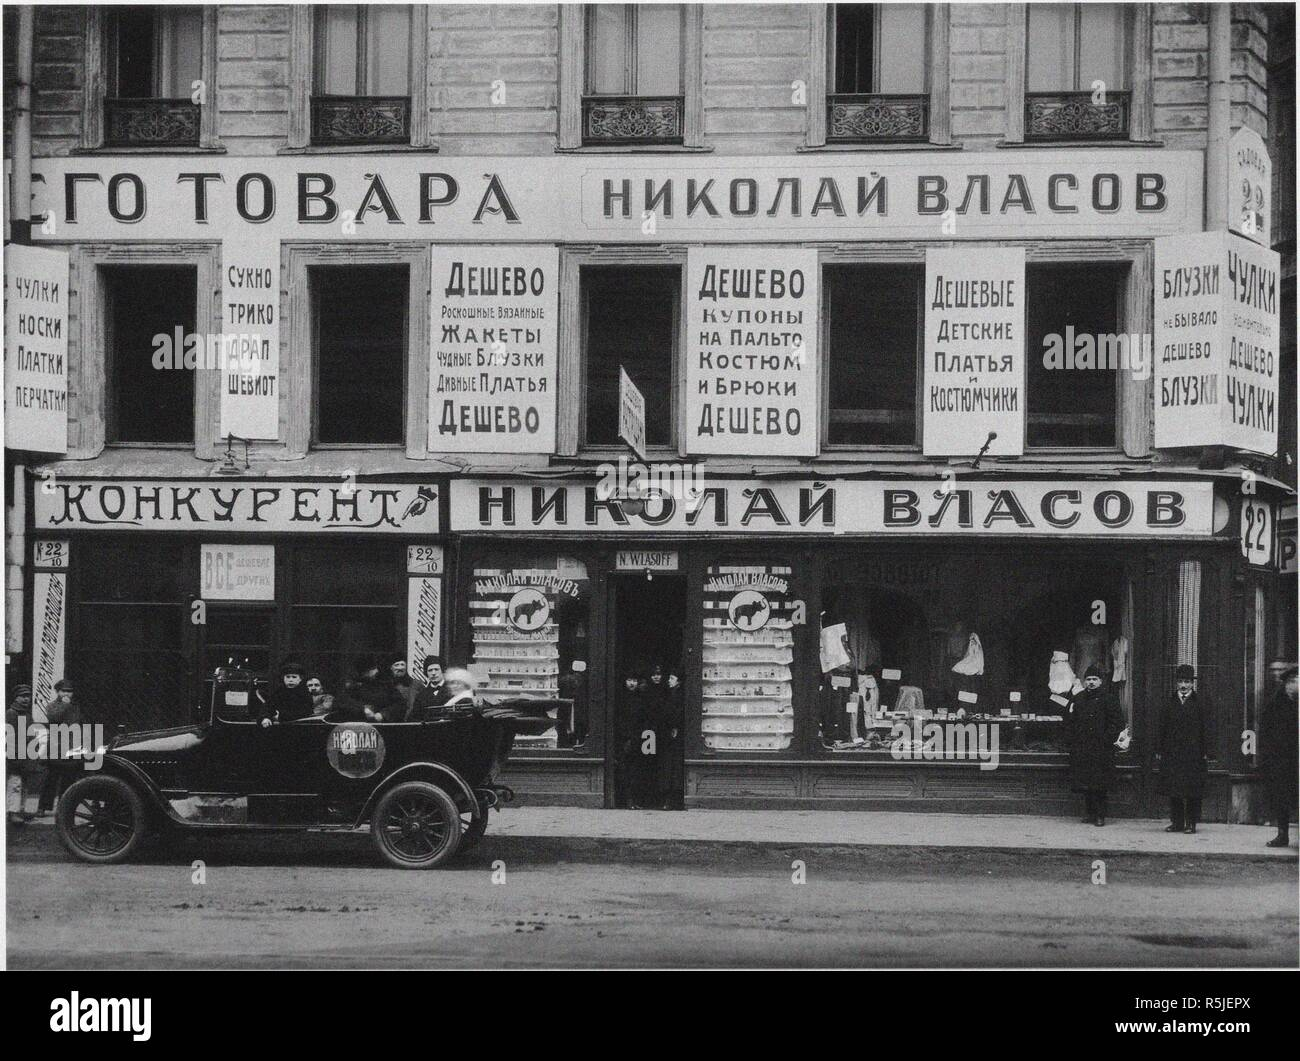 NEP. Petrograd. Museum: PRIVATE COLLECTION. Author: Bulla, Karl Karlovich. - Stock Image